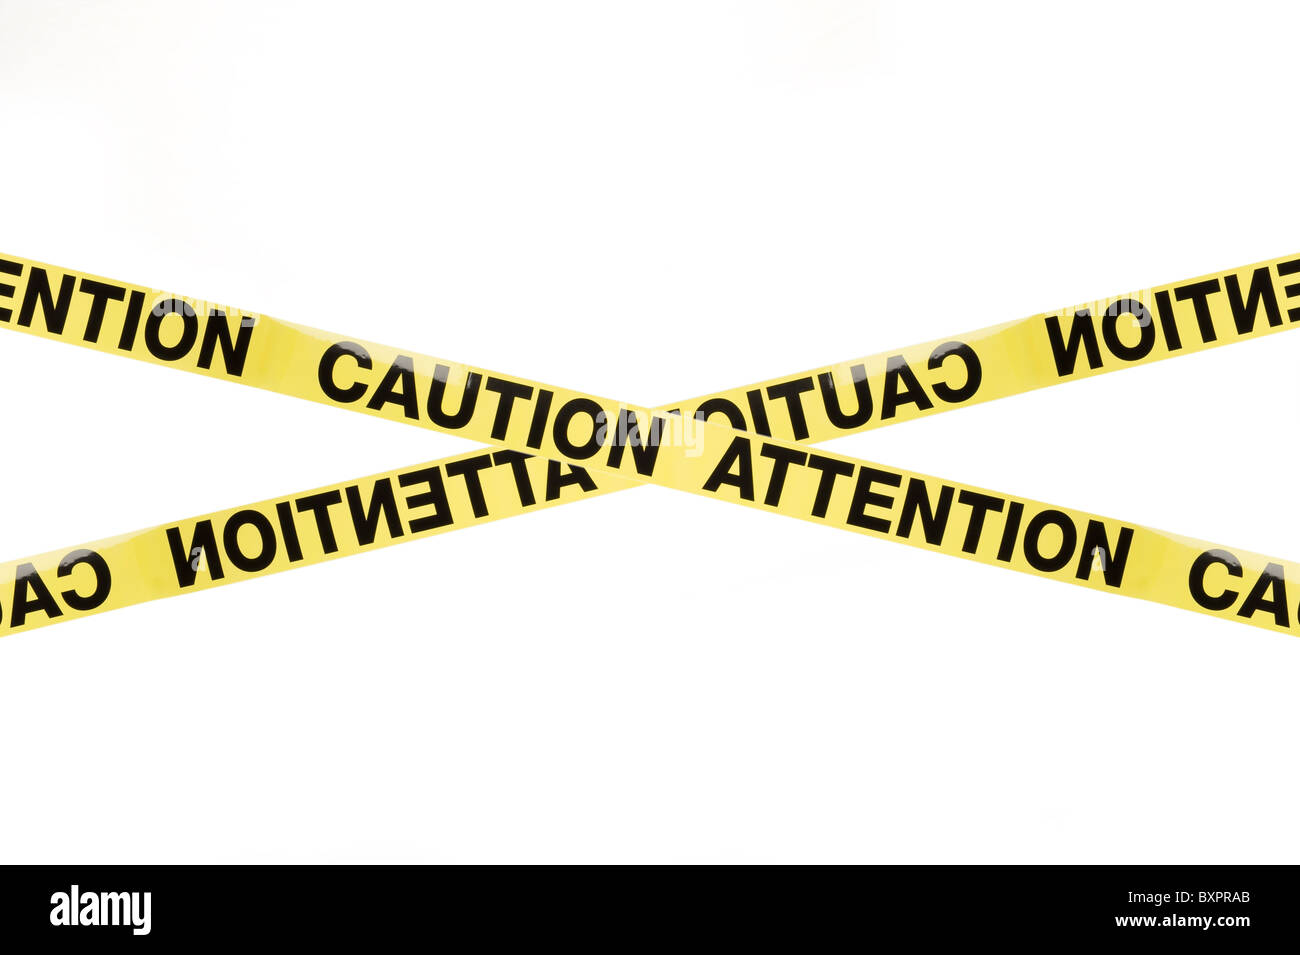 Warning sign Caution Attention, studio isolated on white background - Stock Image